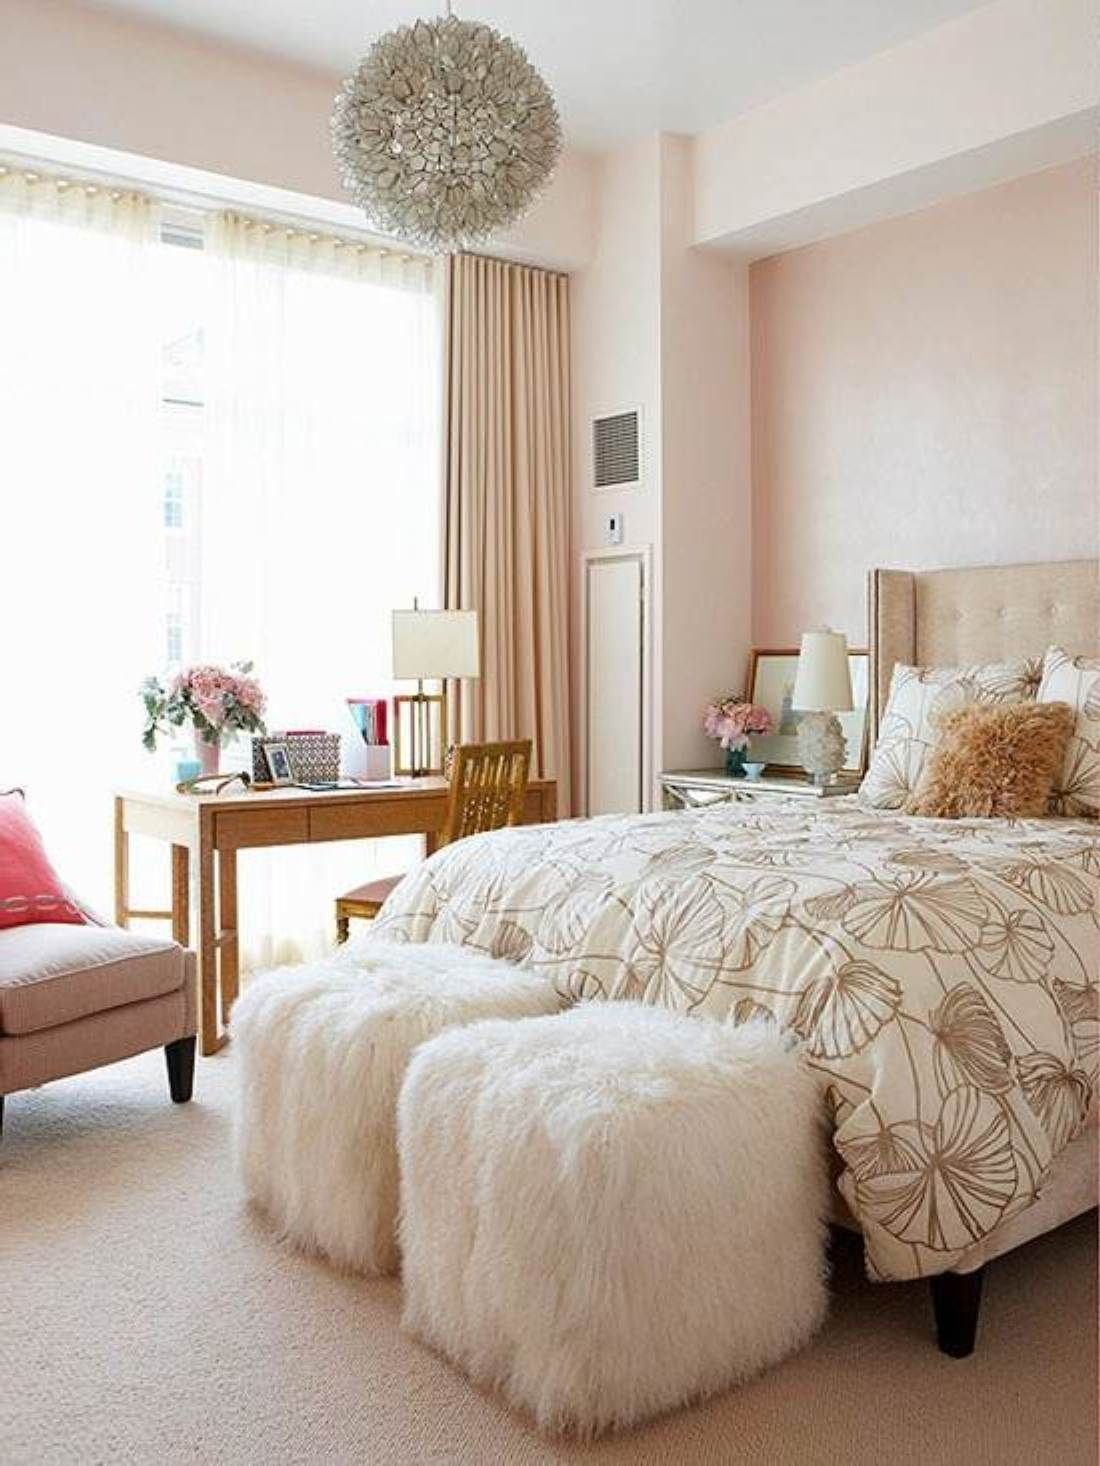 Pin by Krystal Lindsey on Home  Champagne bedroom, Elegant